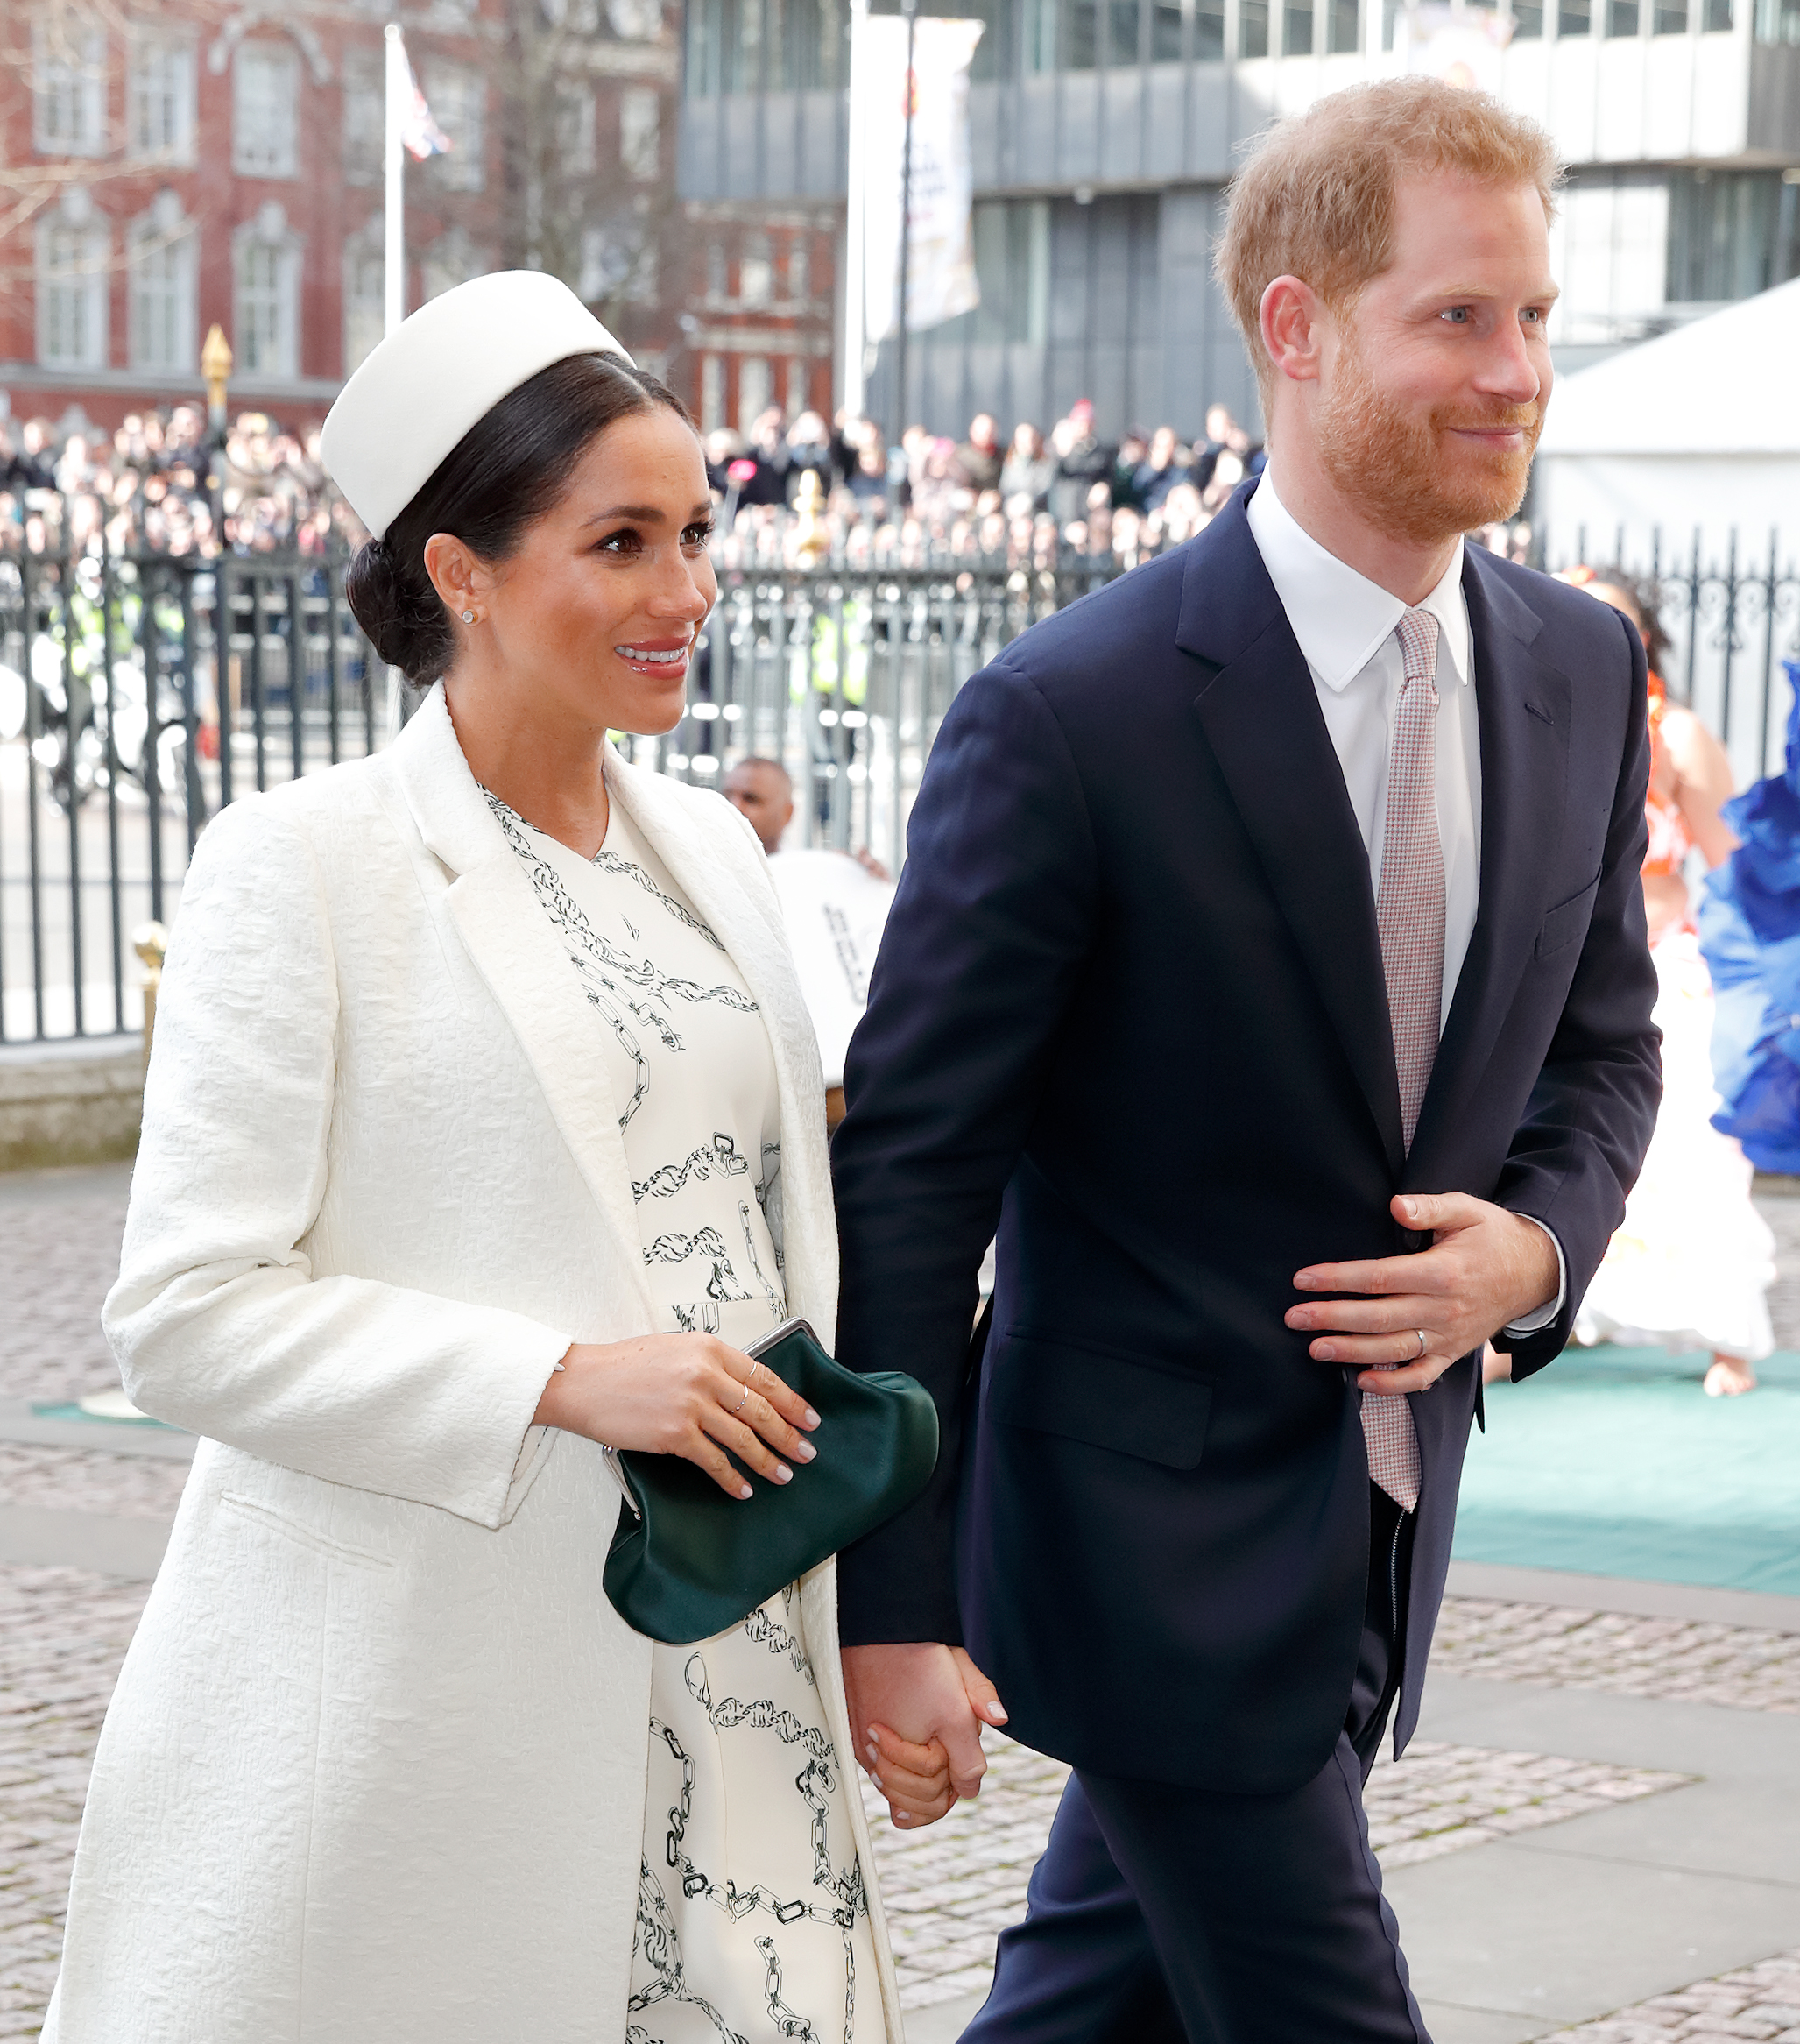 Prince Harry and Meghan Markle Have Welcomed Their First Child!